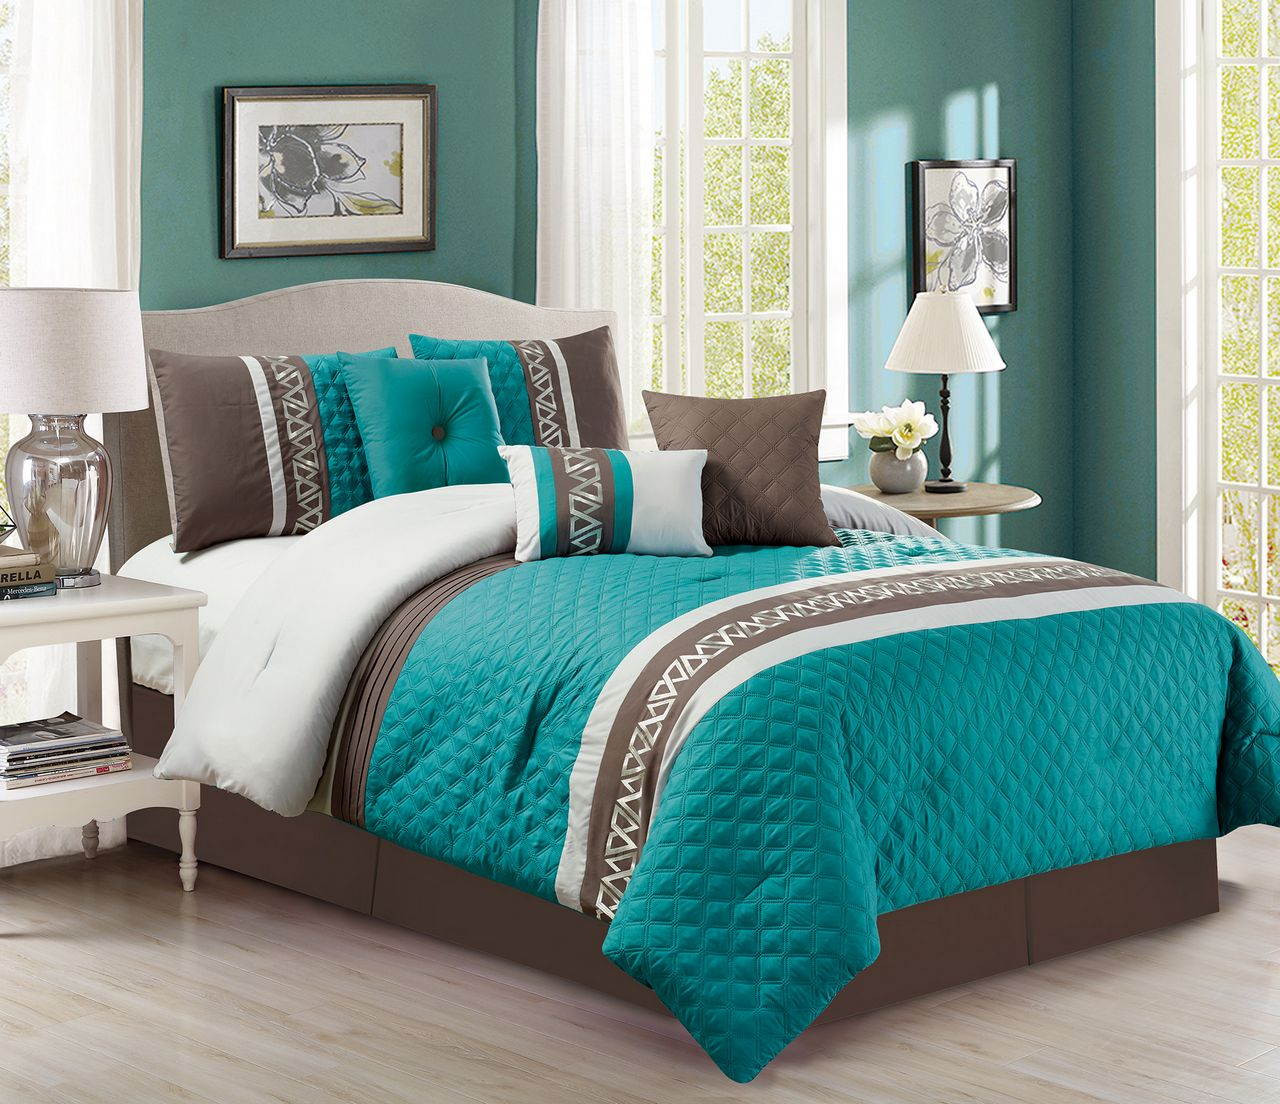 7 Piece Diamond Quilted Teal Chocolate Comforter Set Ebay